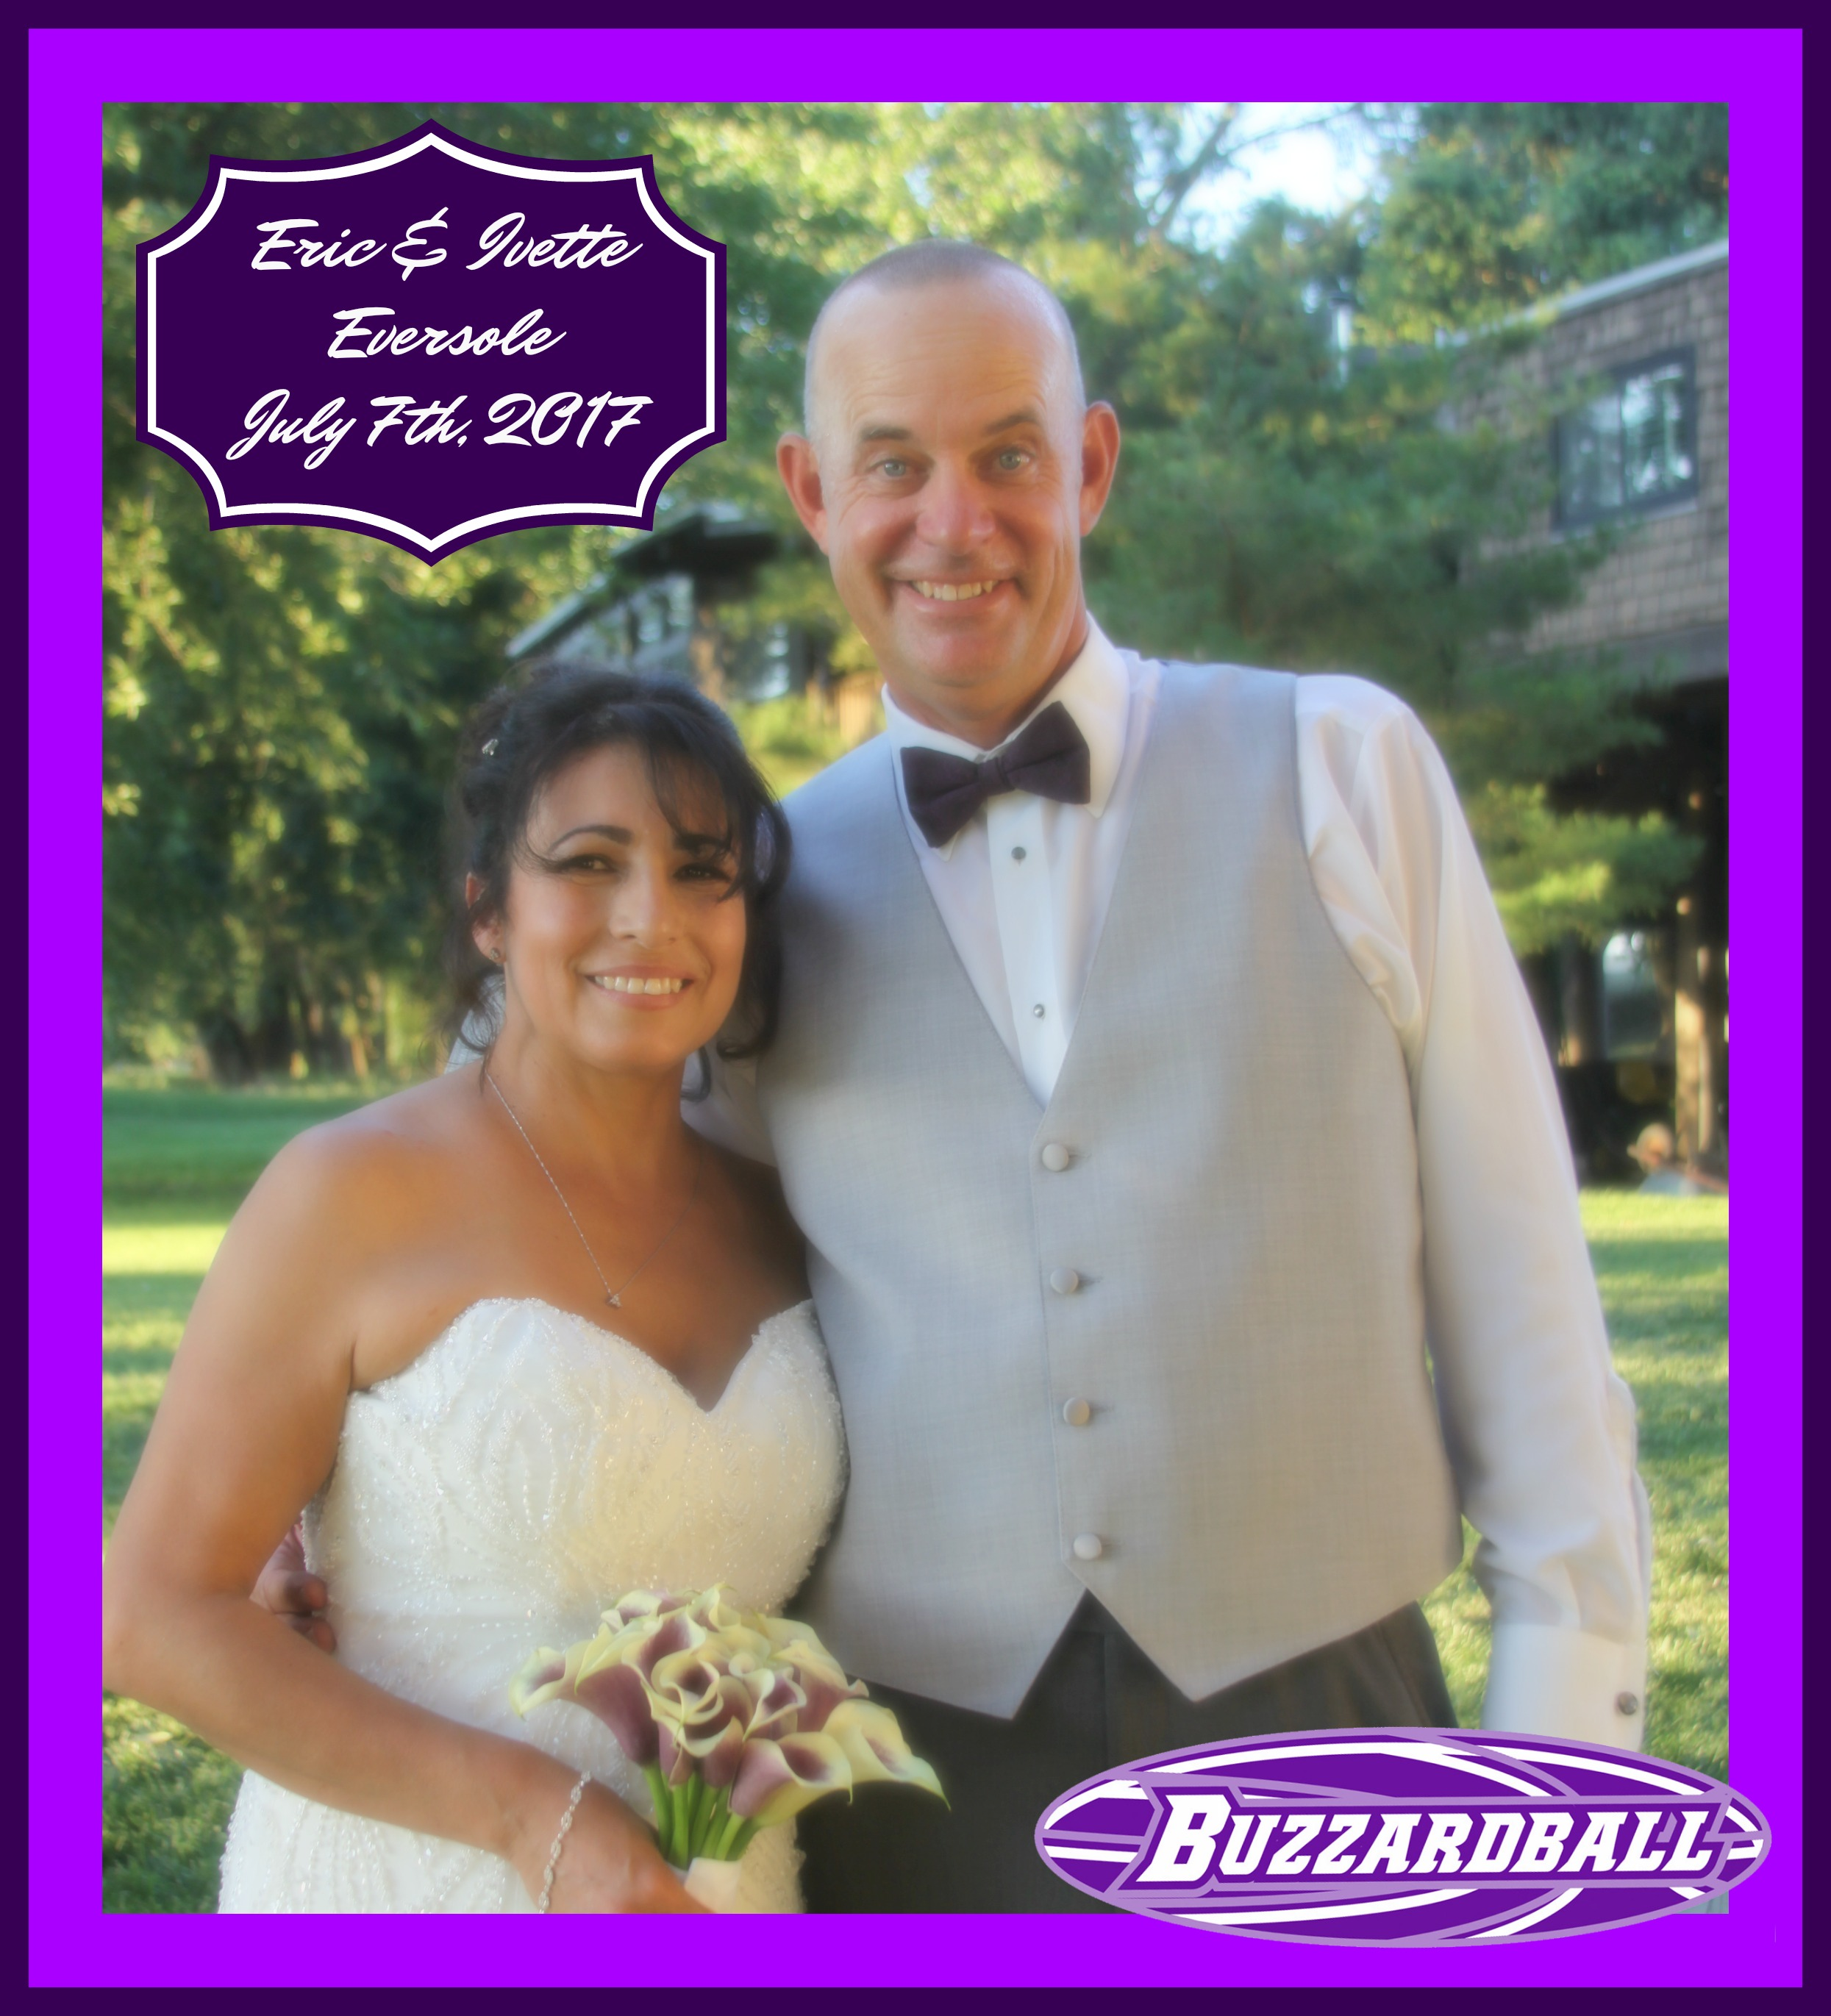 Eric and Ivette Eversole.jpg